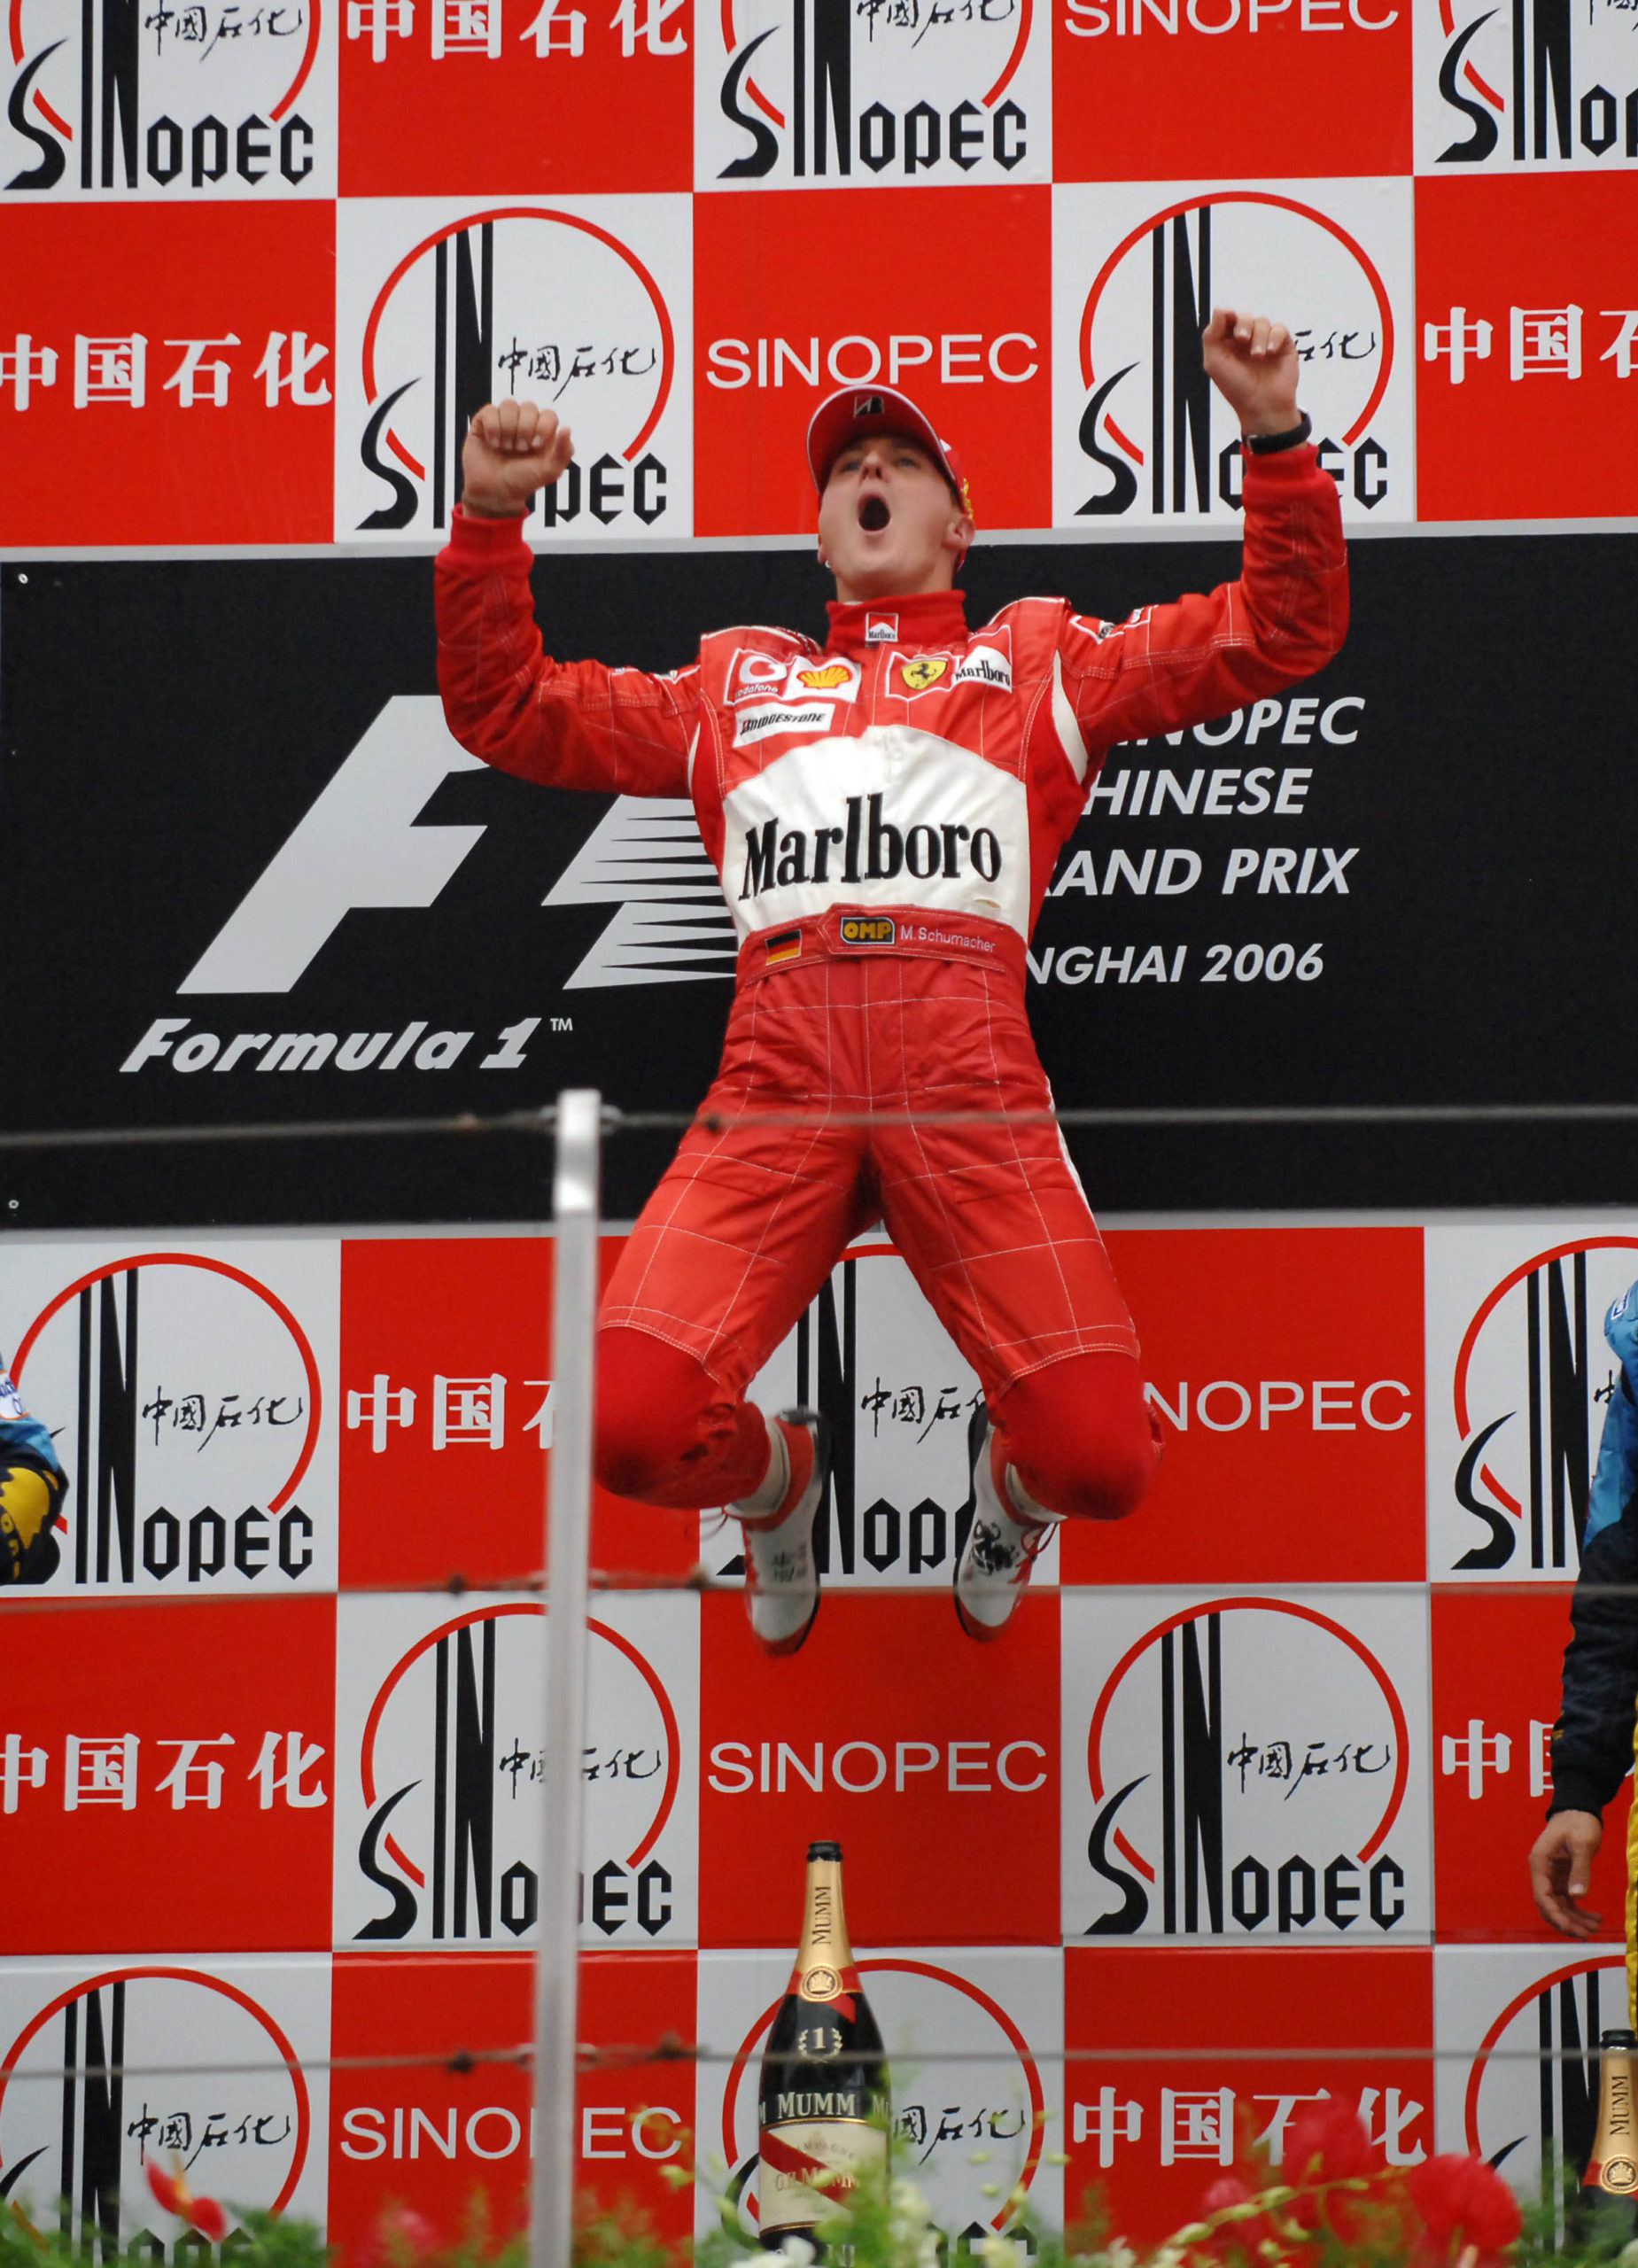 Michael-Schumacher-leaps-on-the-podium-at-the-2006-Chinese-Grand-Prix-after-his-final-91st-F1-win